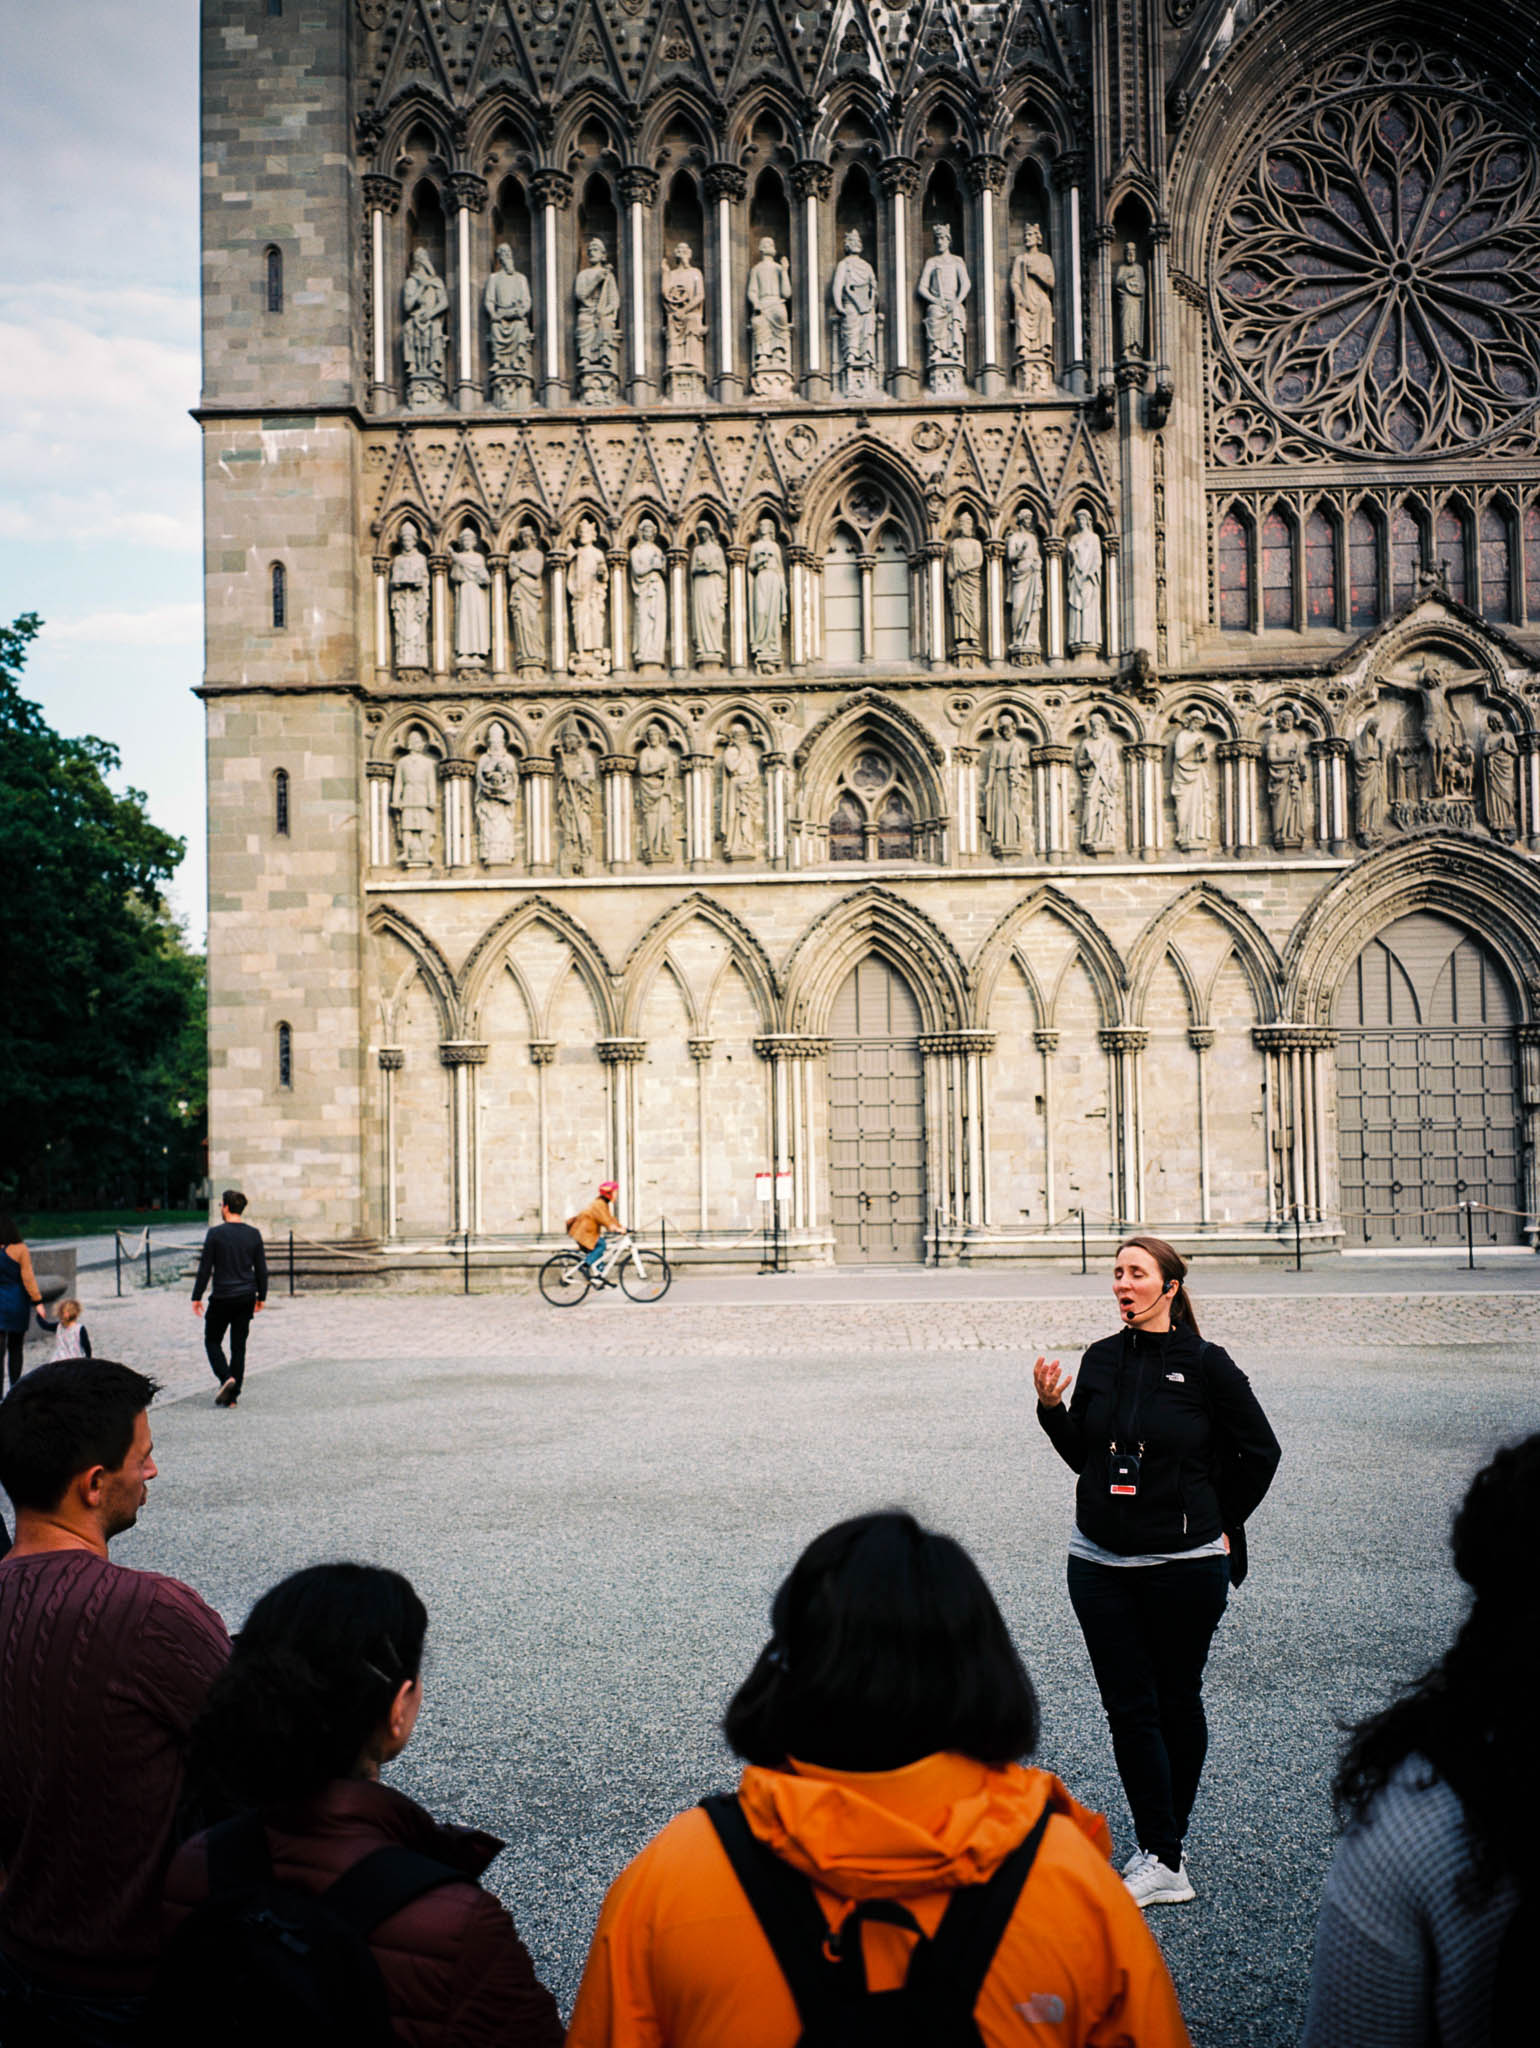 Friday 16.9.2016. Group of tourists and a guide in front of Nidarosdomen cathedral